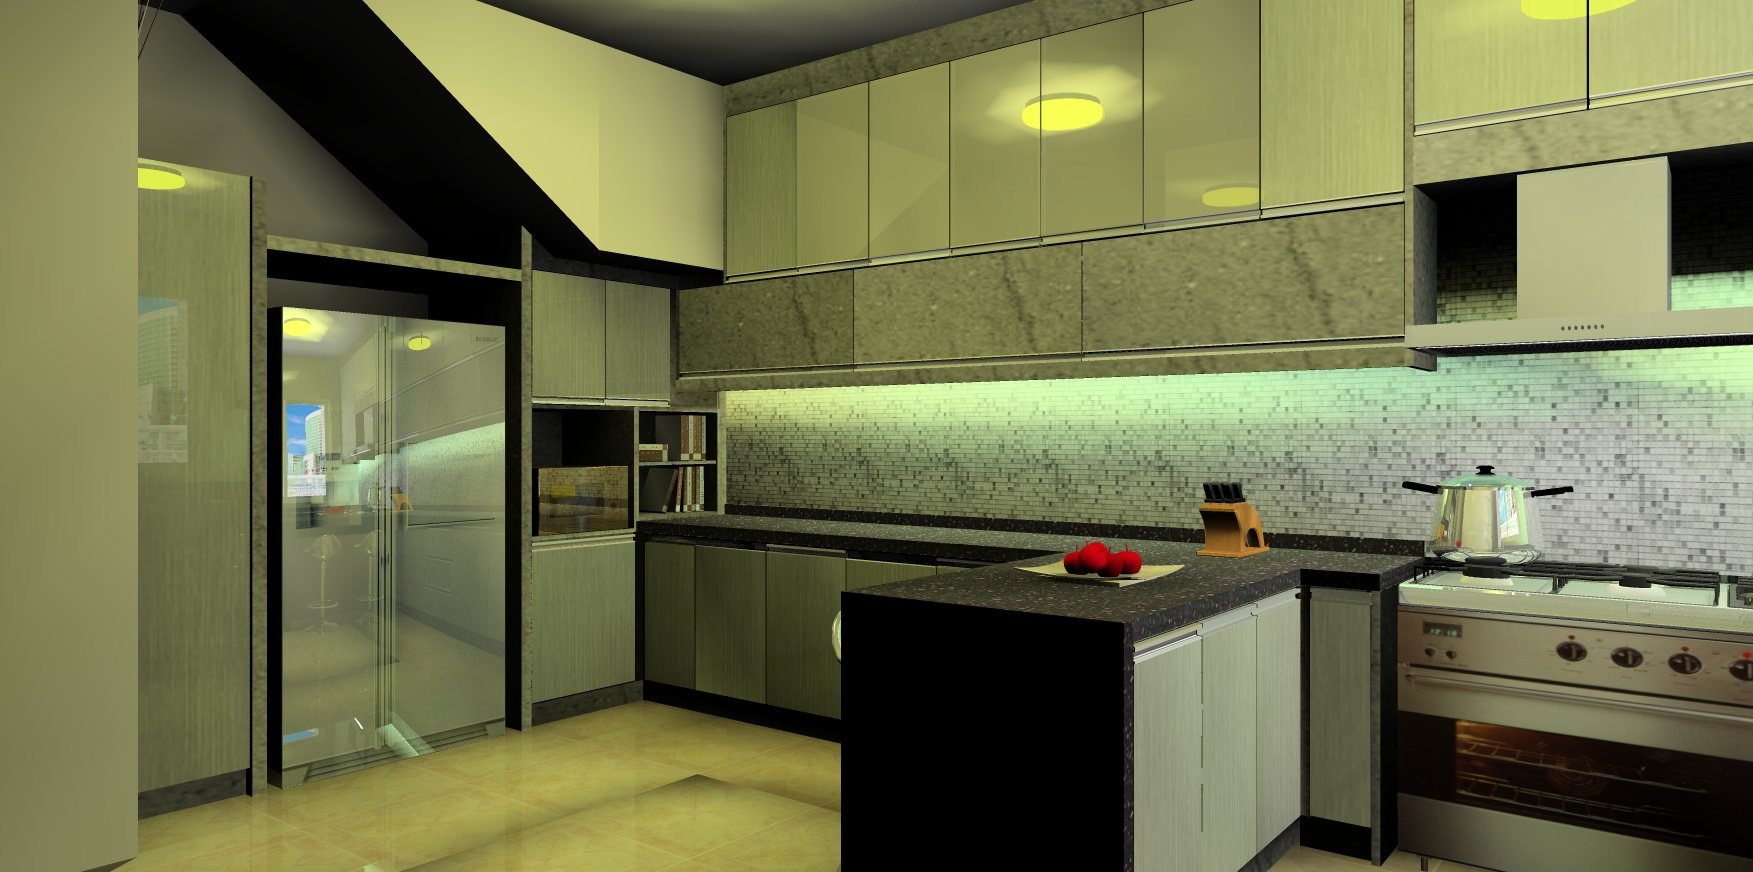 Tv Cabinet Kitchen Green Tree Enterprise We Are Specialist In Kitchen